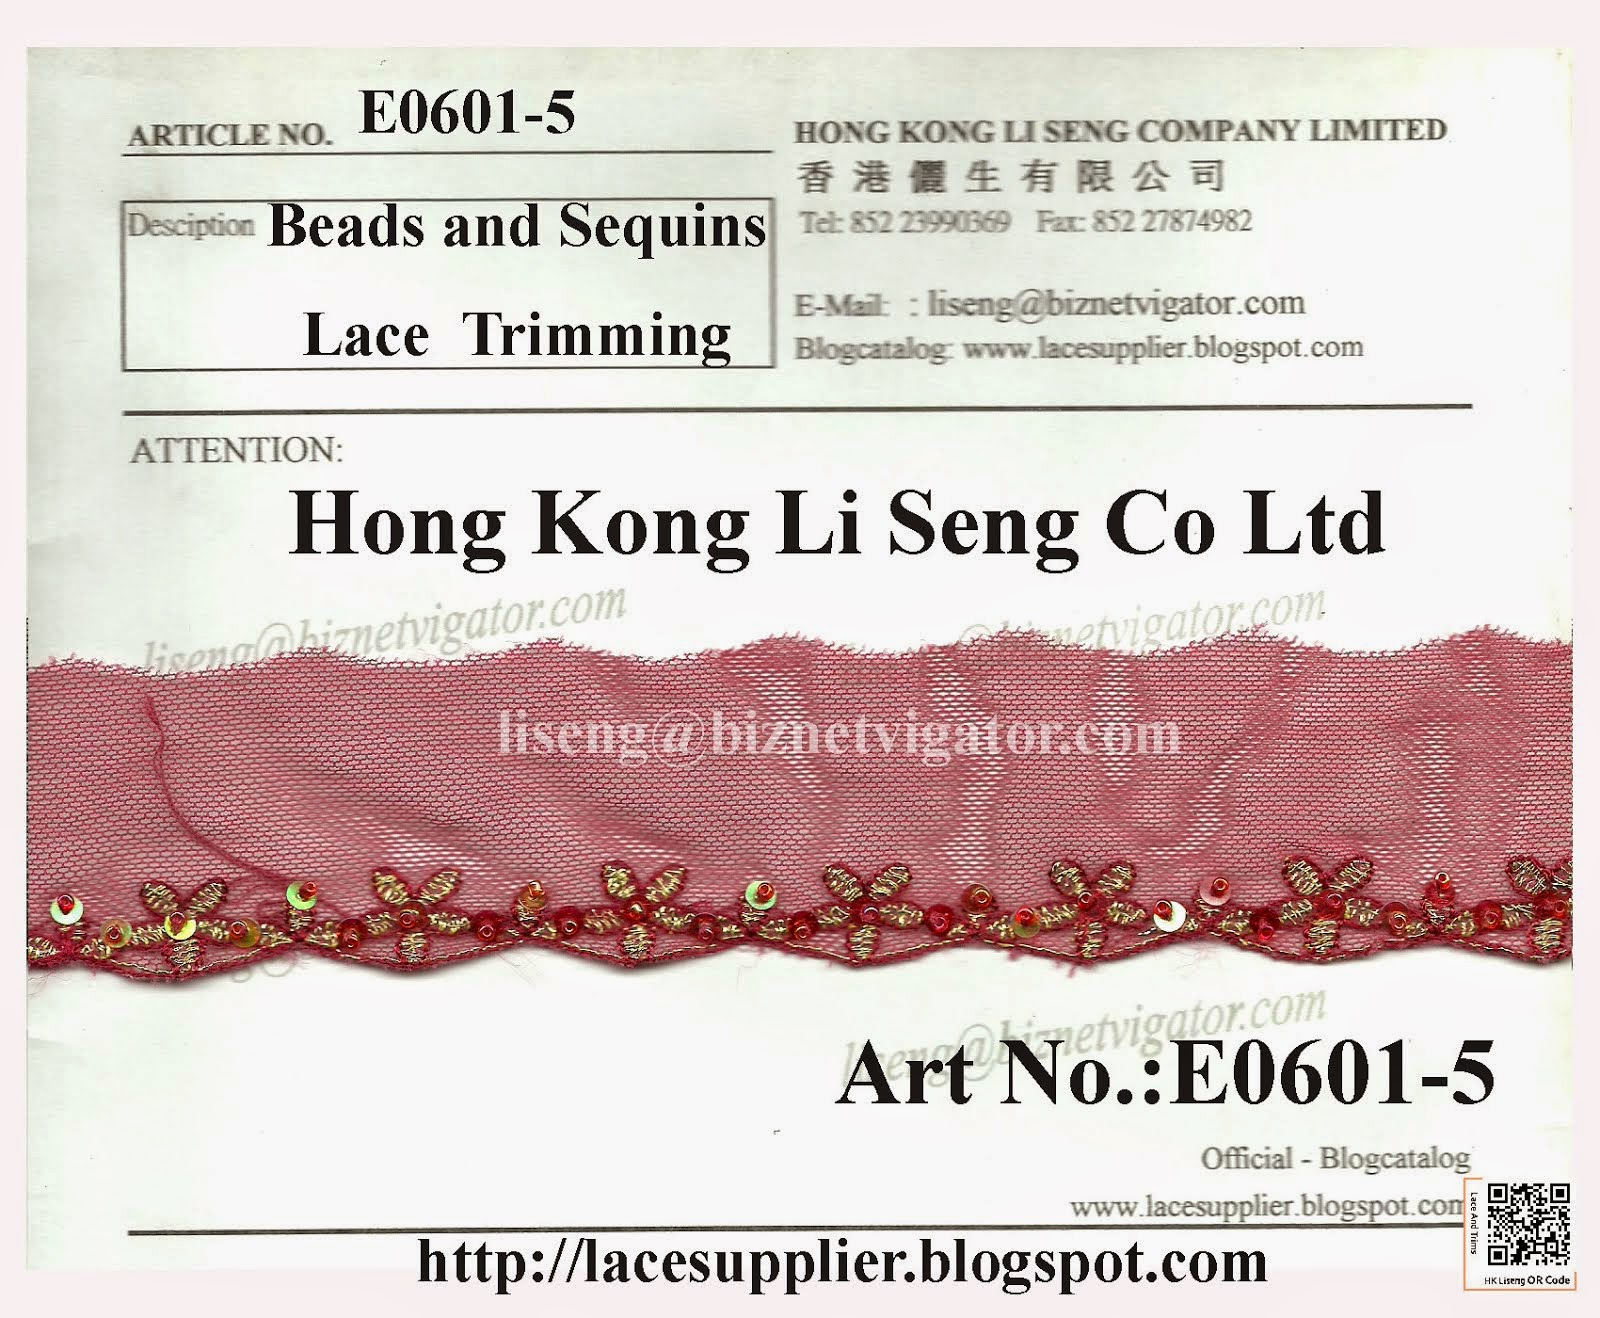 Beads and Sequins Lace Trims Factory - Hong Kong Li Seng Co Ltd